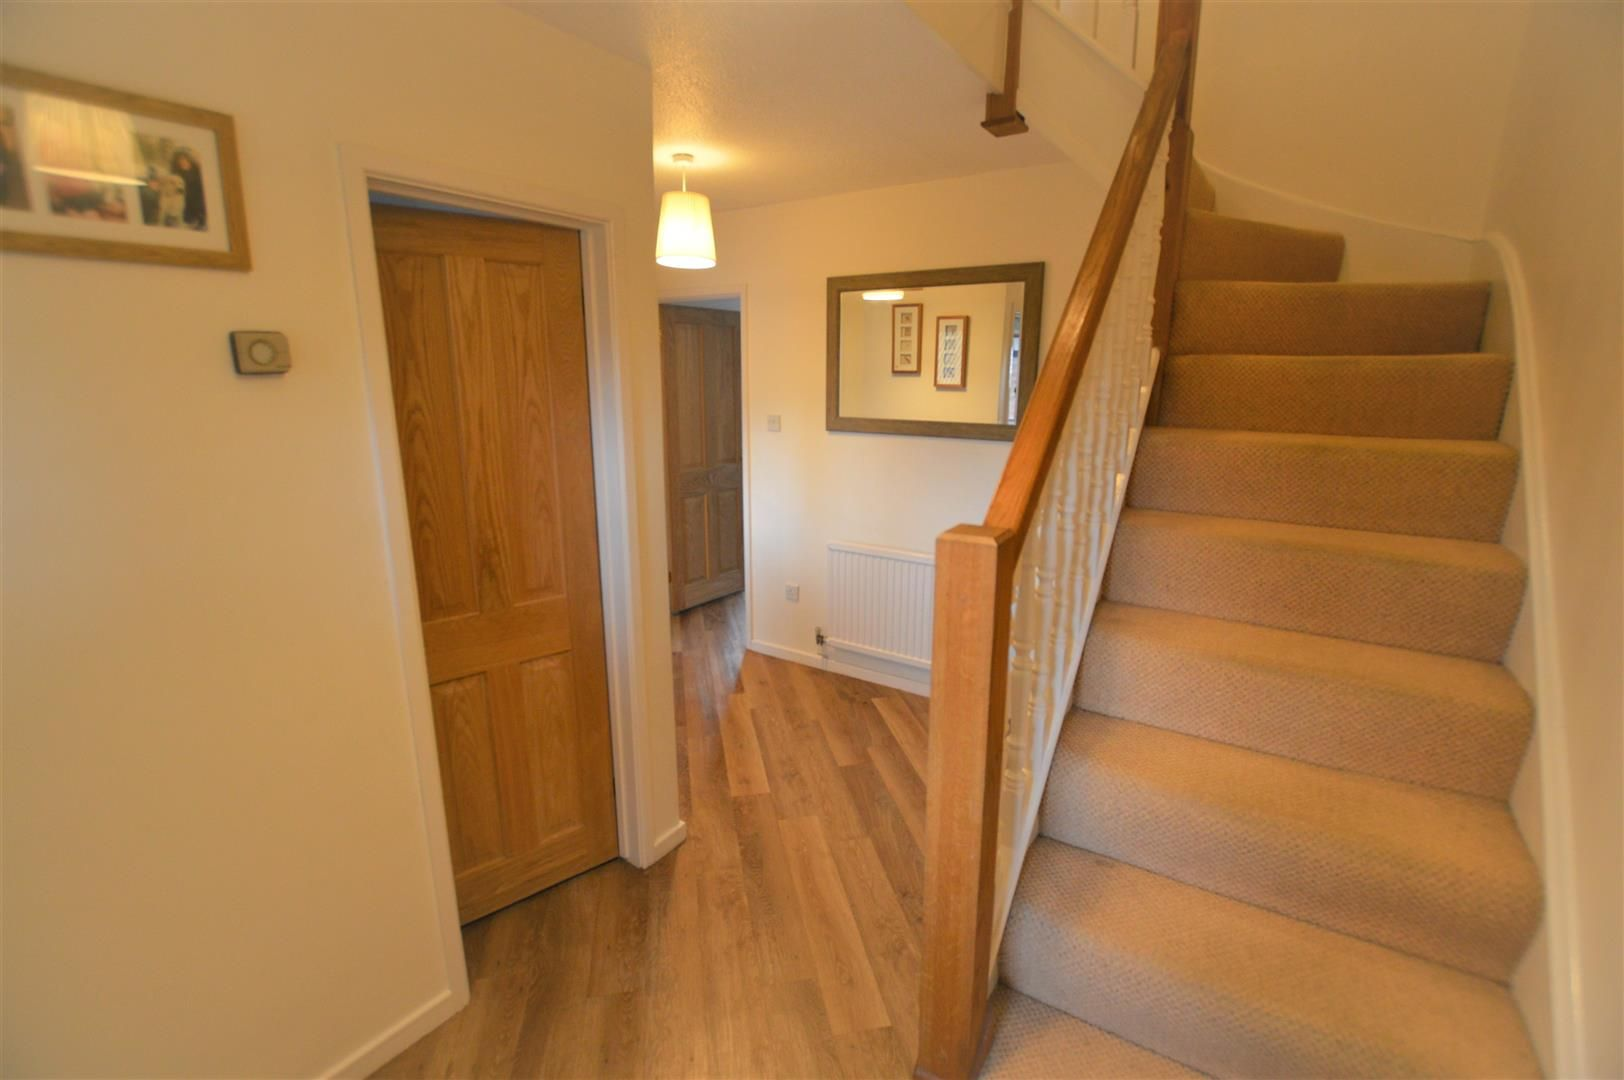 4 bed semi-detached for sale in Luston 4